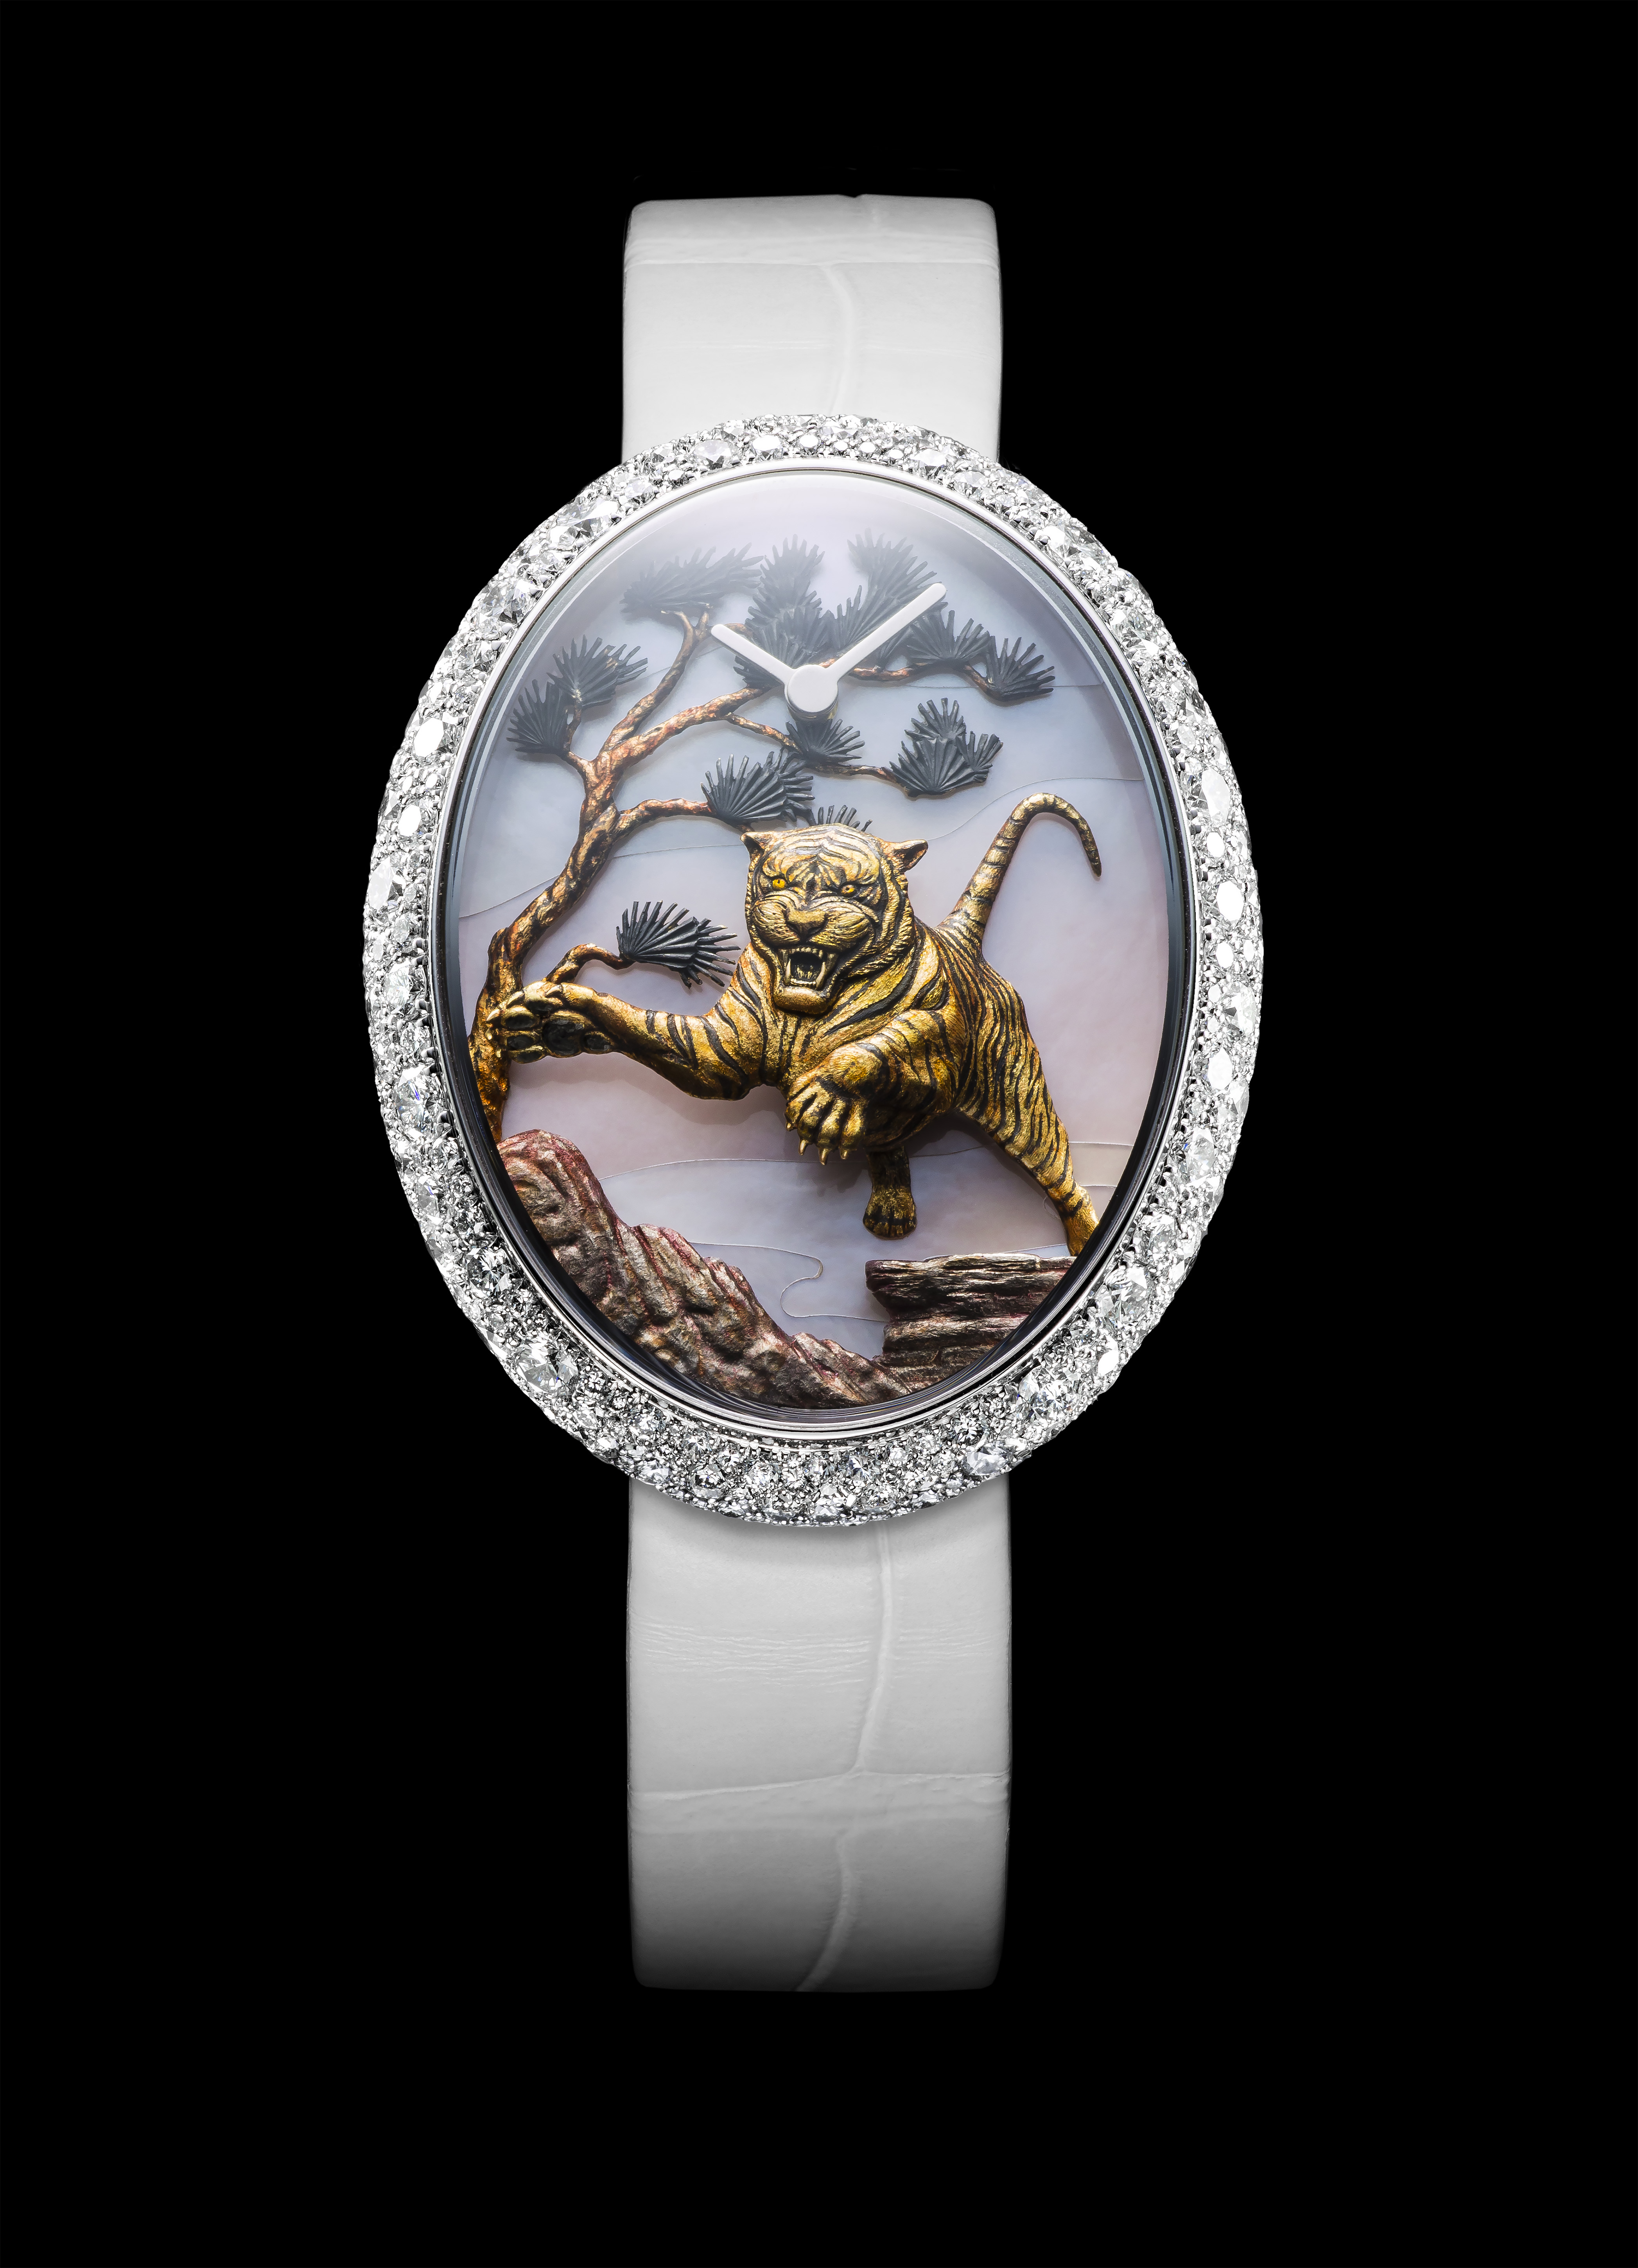 Van 'T Hoff Time of the Tiger Art Watch